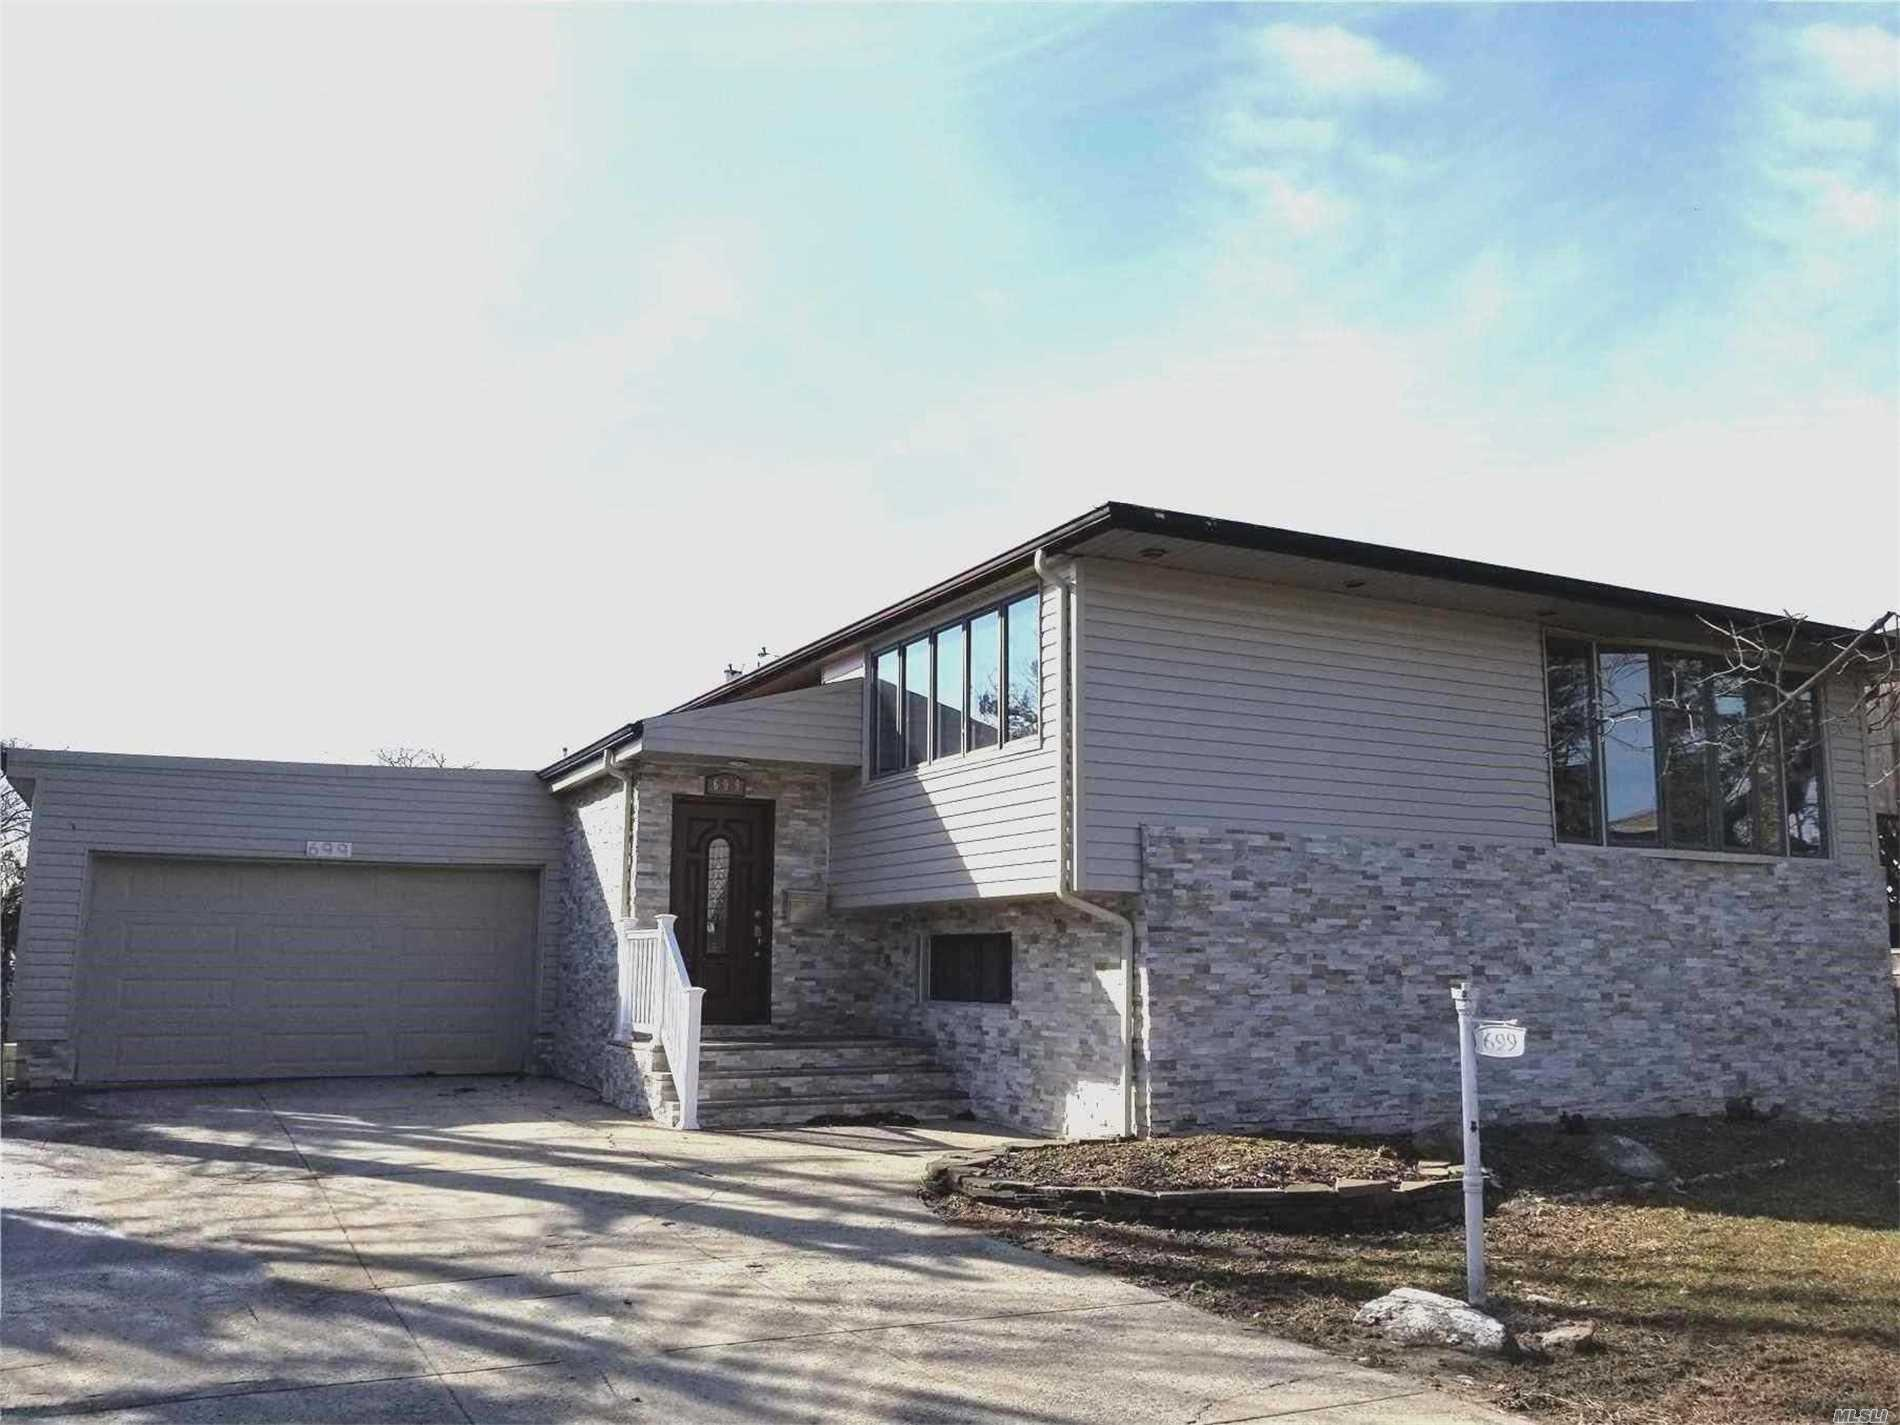 Wake Up To Water Views In This Newly, Completely Renovated House By The Water. New Open Concept Stylish Kitchen W. Double Sink, Granite, Never Been Used Ss Appl. New Bathroom With Double Sinks, + Master Suite W. Full Bath. Lower Level Has New Full Bath, Office, Large Family Room W. Fire Place, 2 Bedrooms, Walk In Closet, Much Storage, 2 Car Garage.